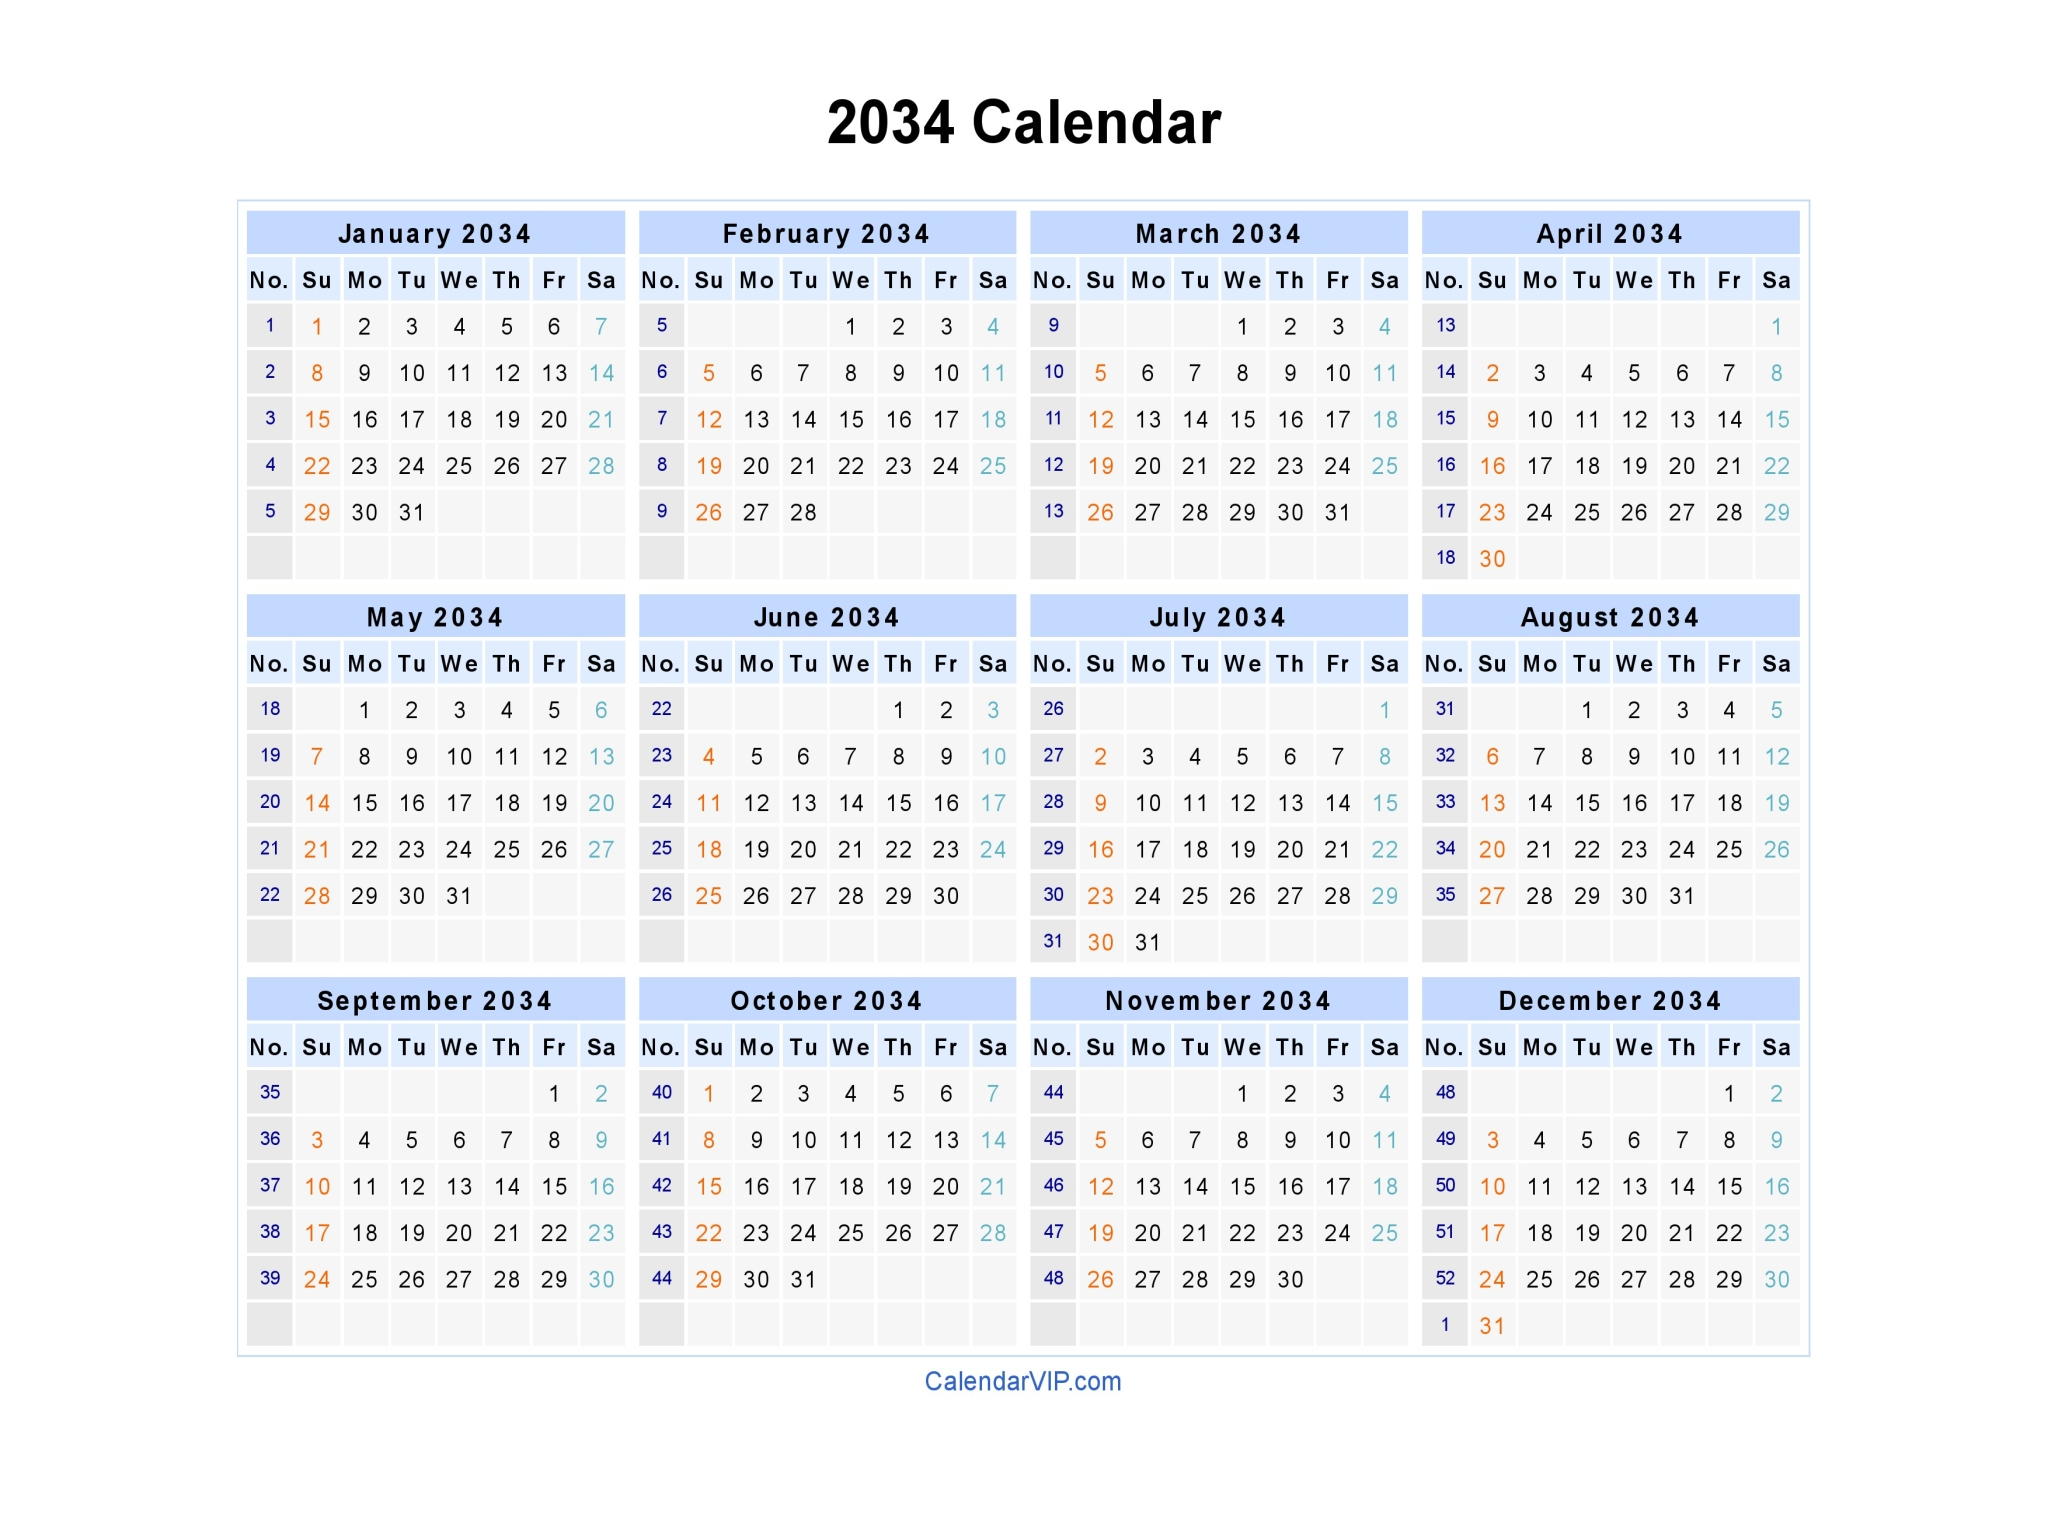 Calendar 2014 Template December 2014 Calendar Online Printable 2014 Holiday Calendar 2034 Calendar Blank Printable Calendar Template In Pdf